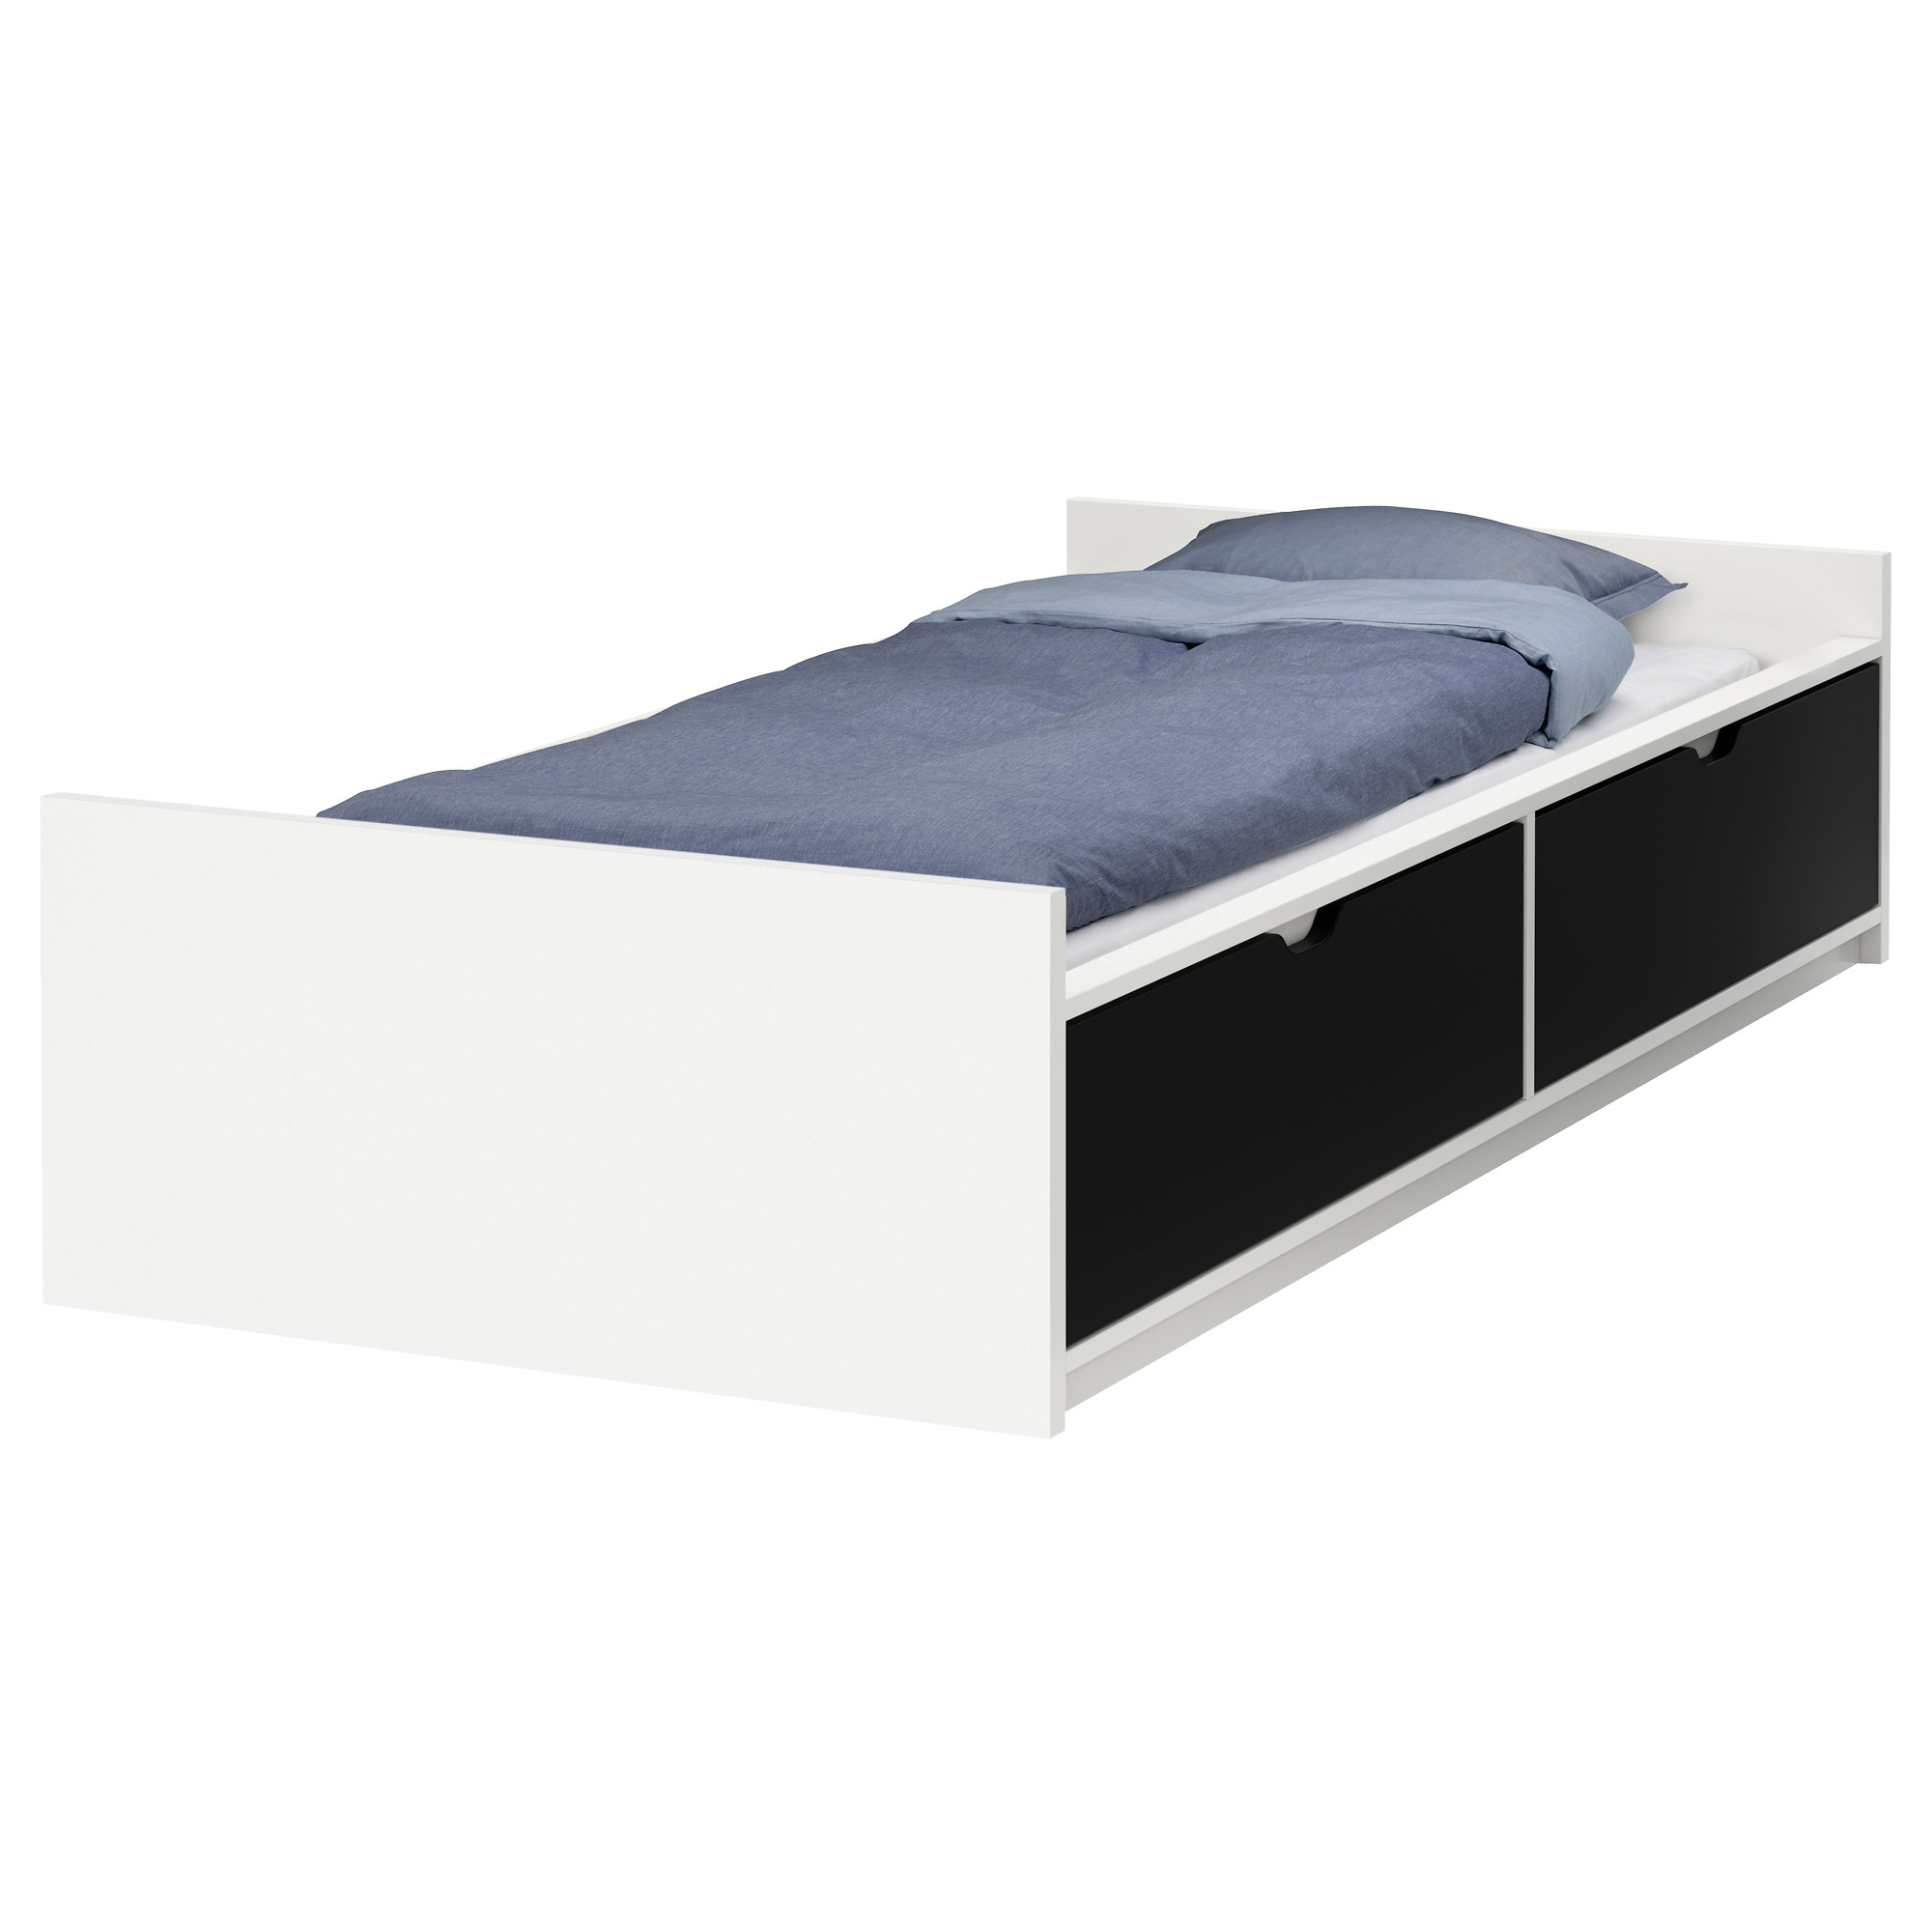 Wonderful Twin Xl Bed Frame Ikea Homesfeed Wonderful Twin Xl Bed Frame Ikea | Homesfeed